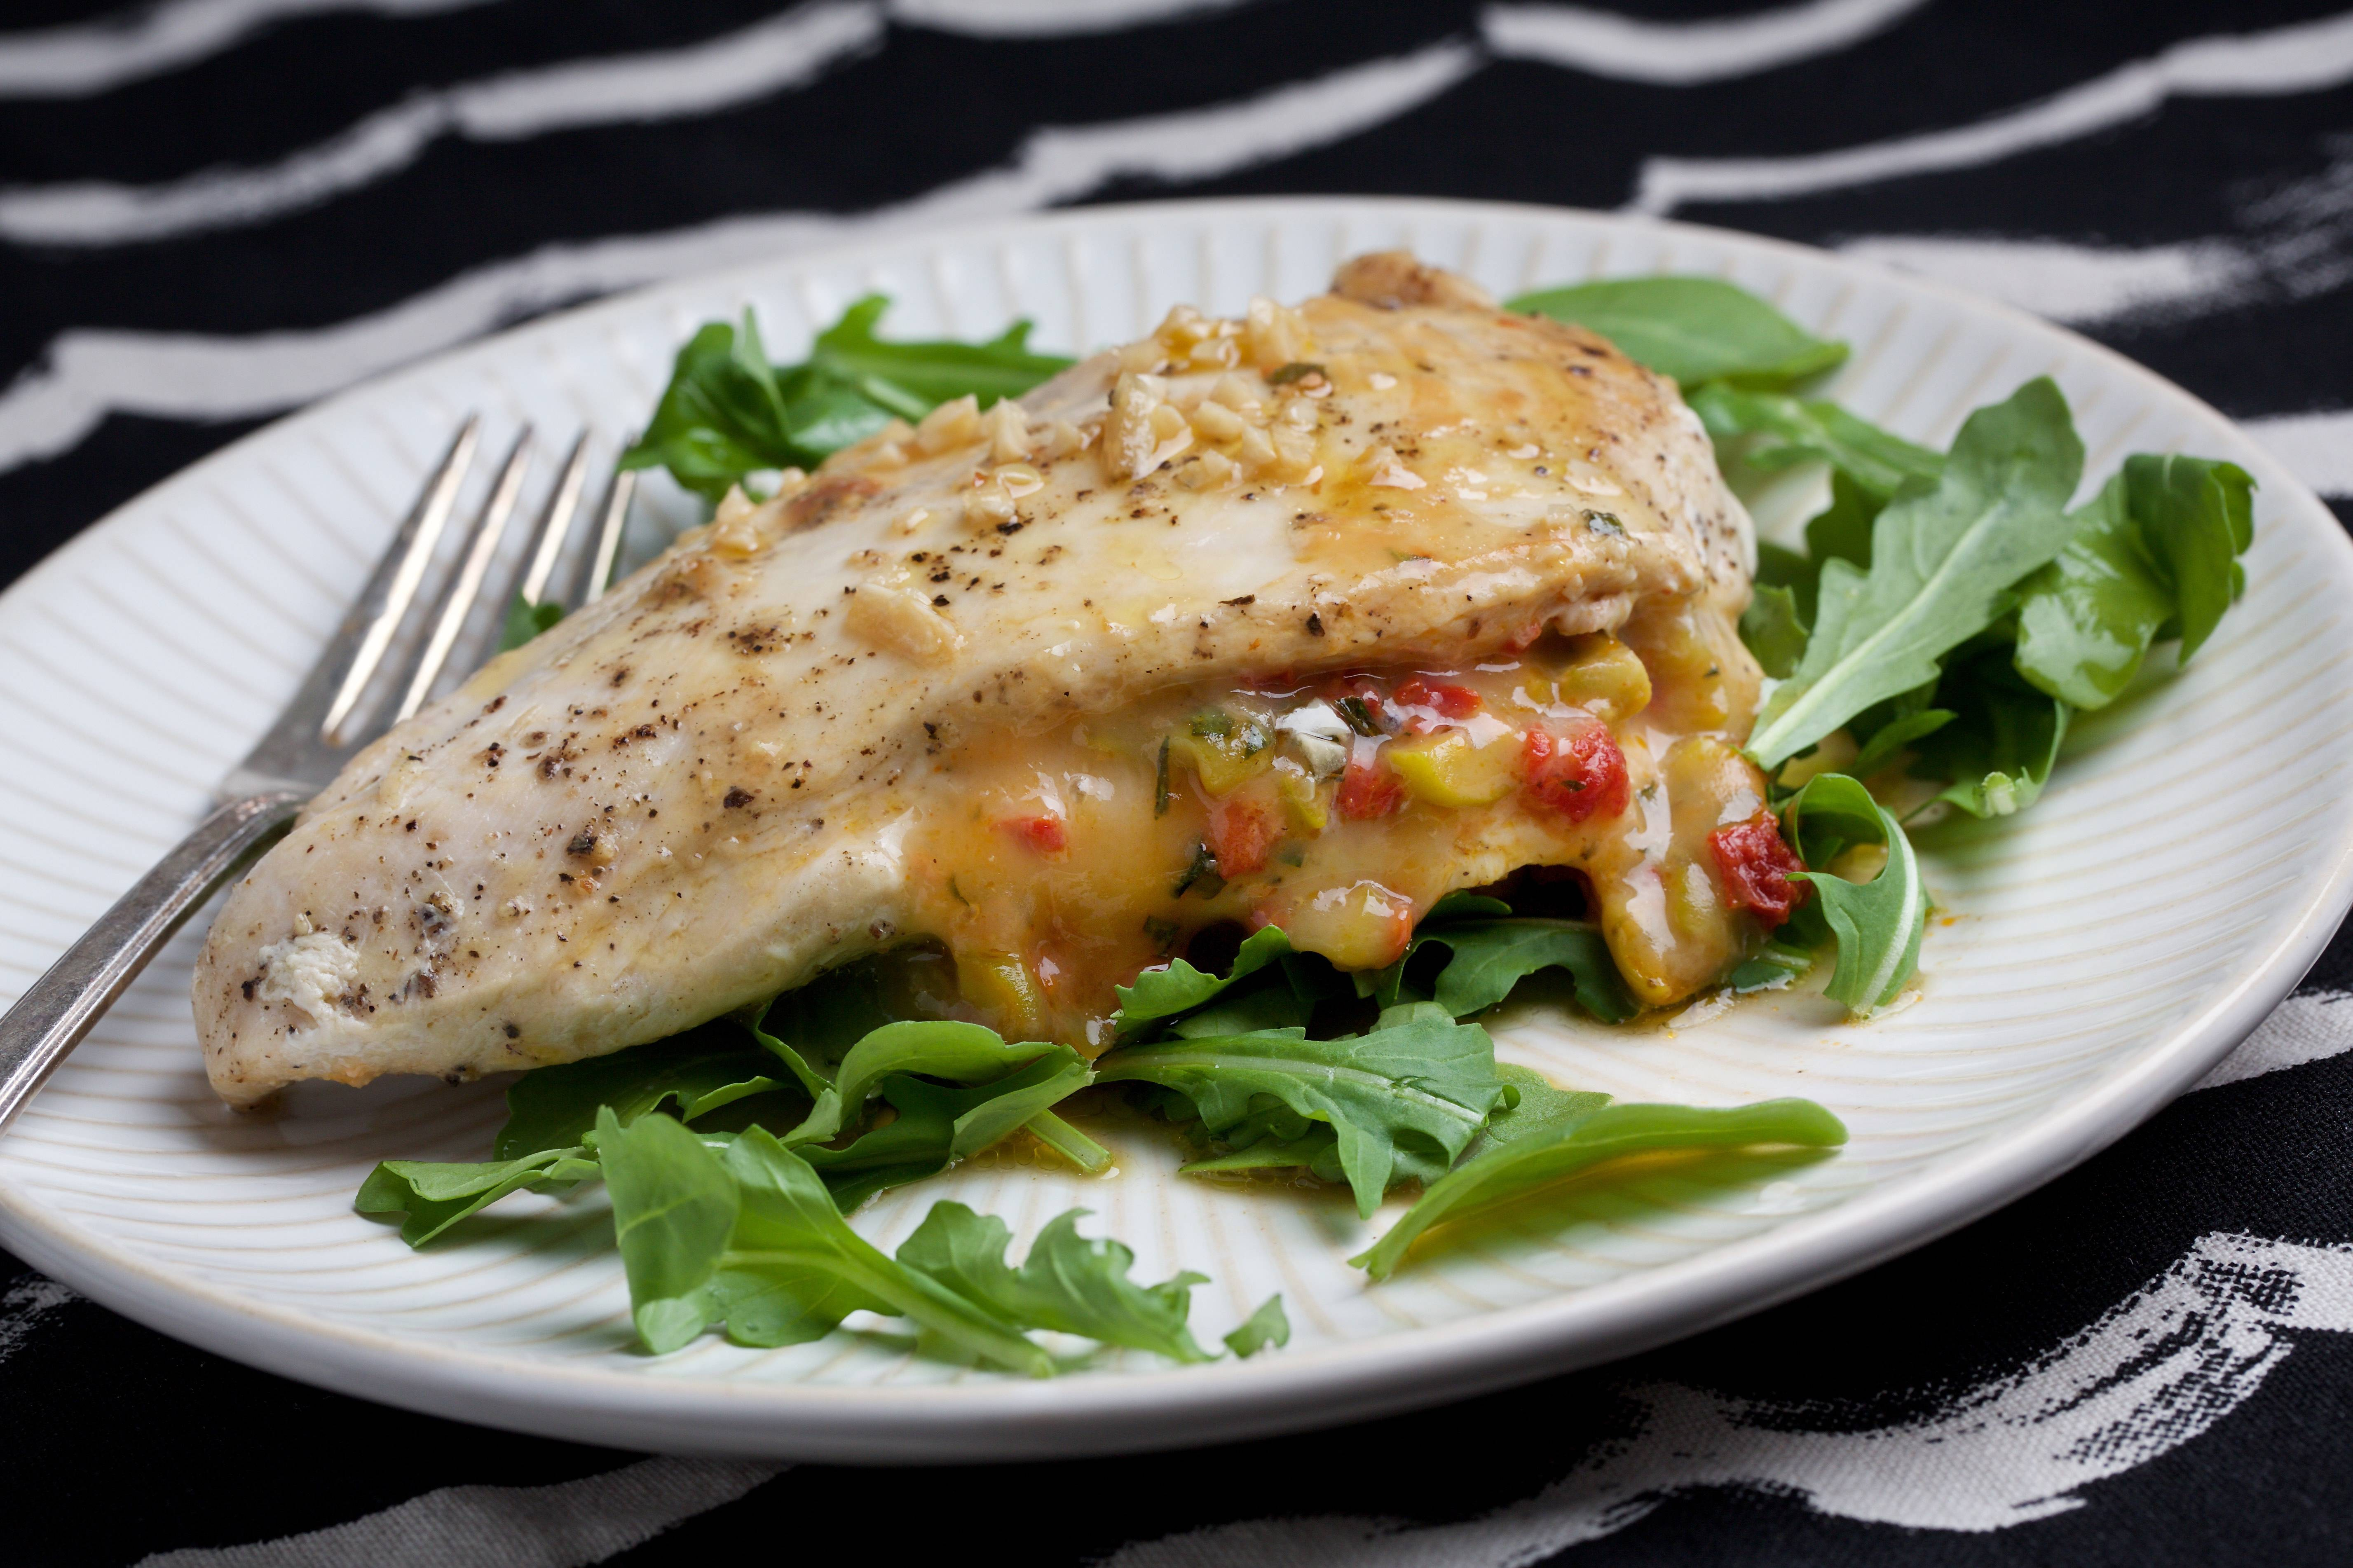 Roasted Red Pepper Stuffed Chicken Breasts are best prepared with chicken breast halves that are about the same size.